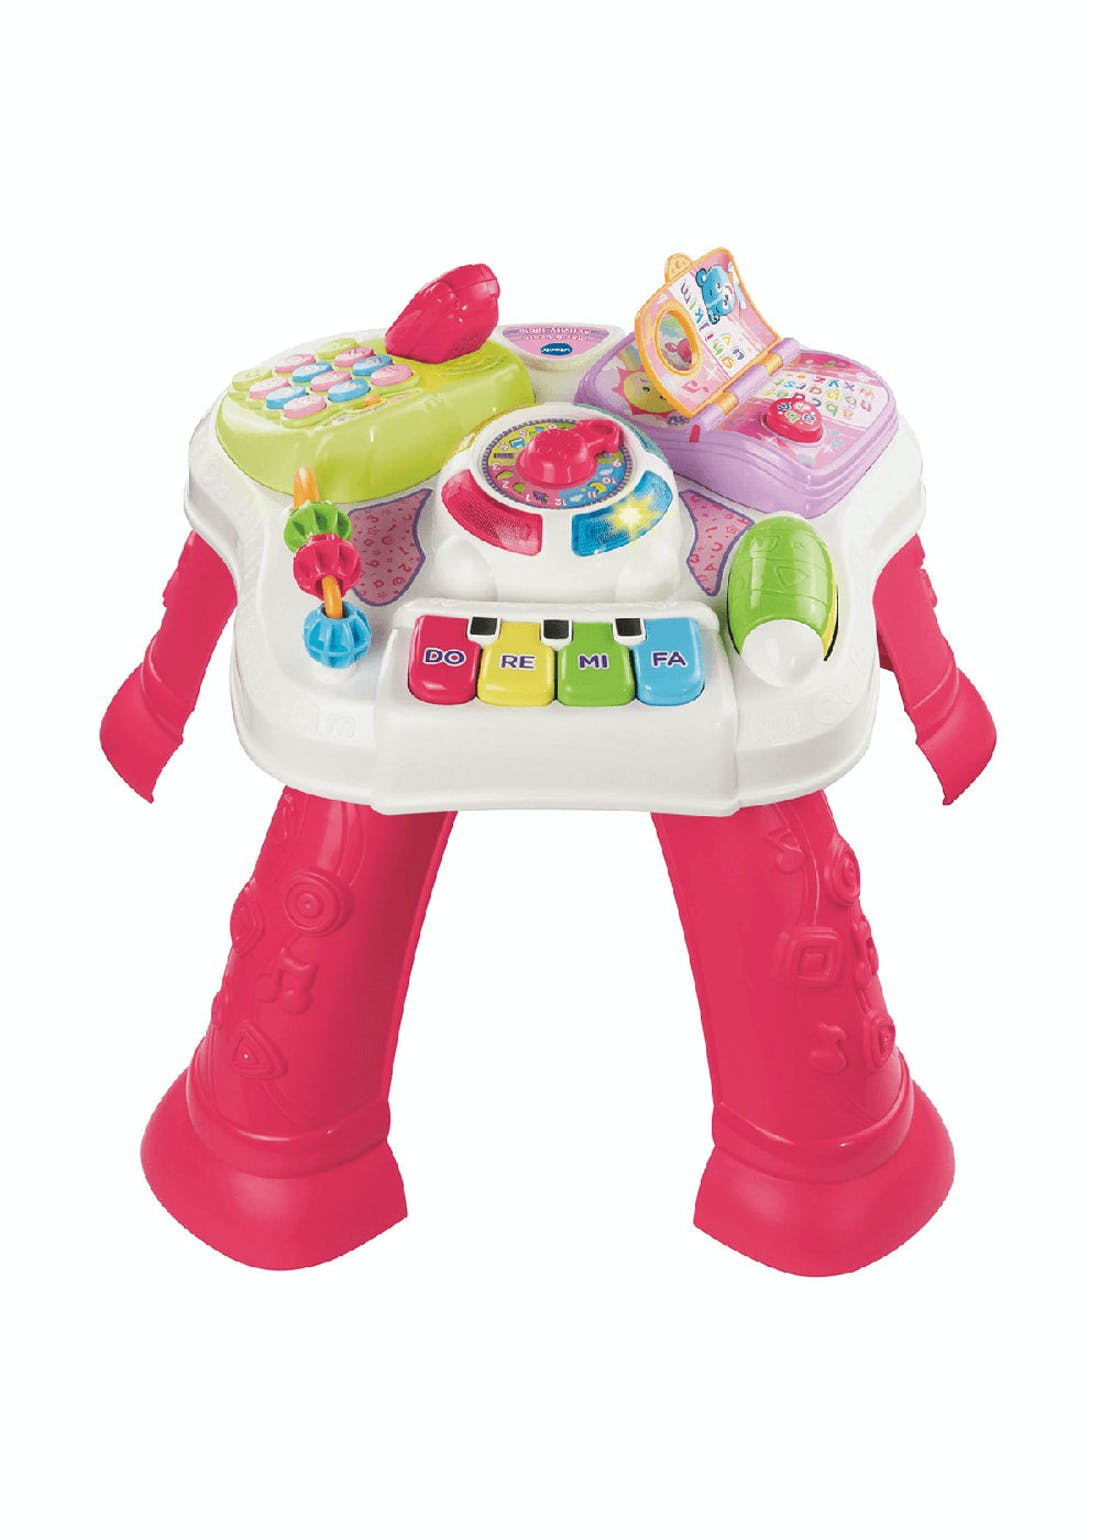 VTech Play & Learn Activity Table (50cm x 40.5cm x 13.5cm)